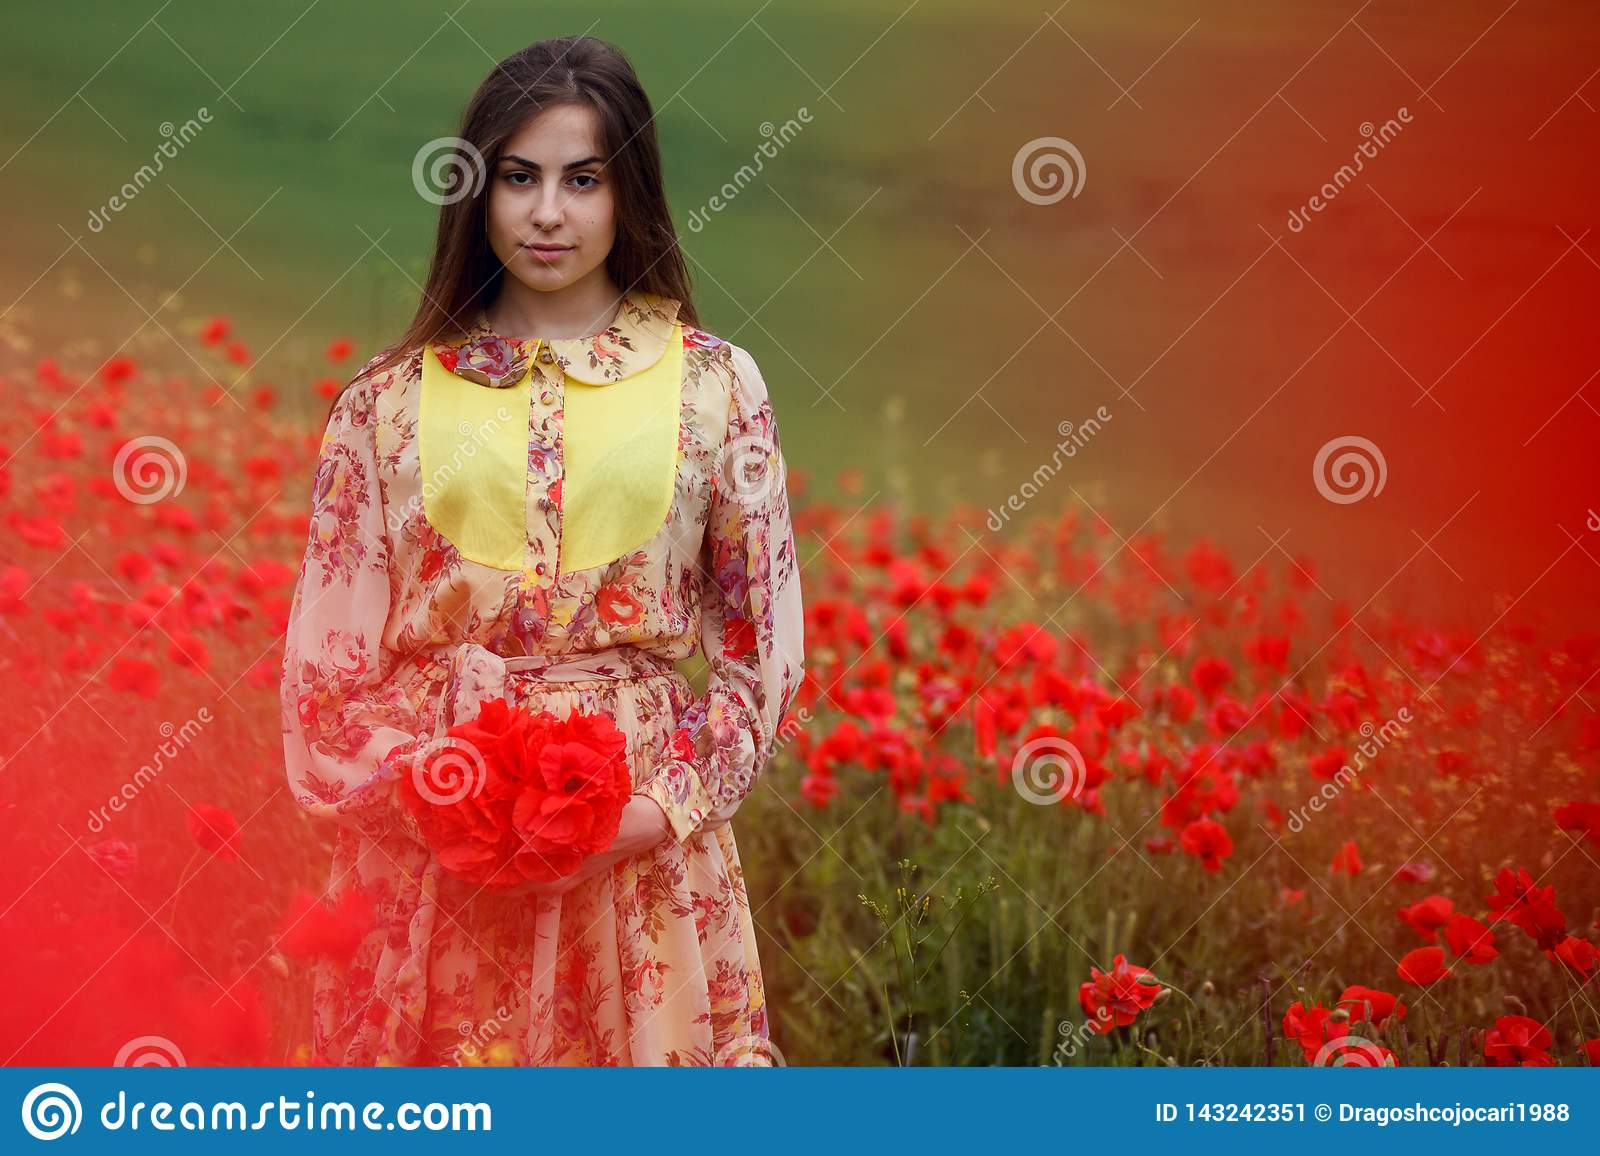 Beautiful portrait of a young long brown haired woman, dressed in a floral dress, standing in a red poppies field